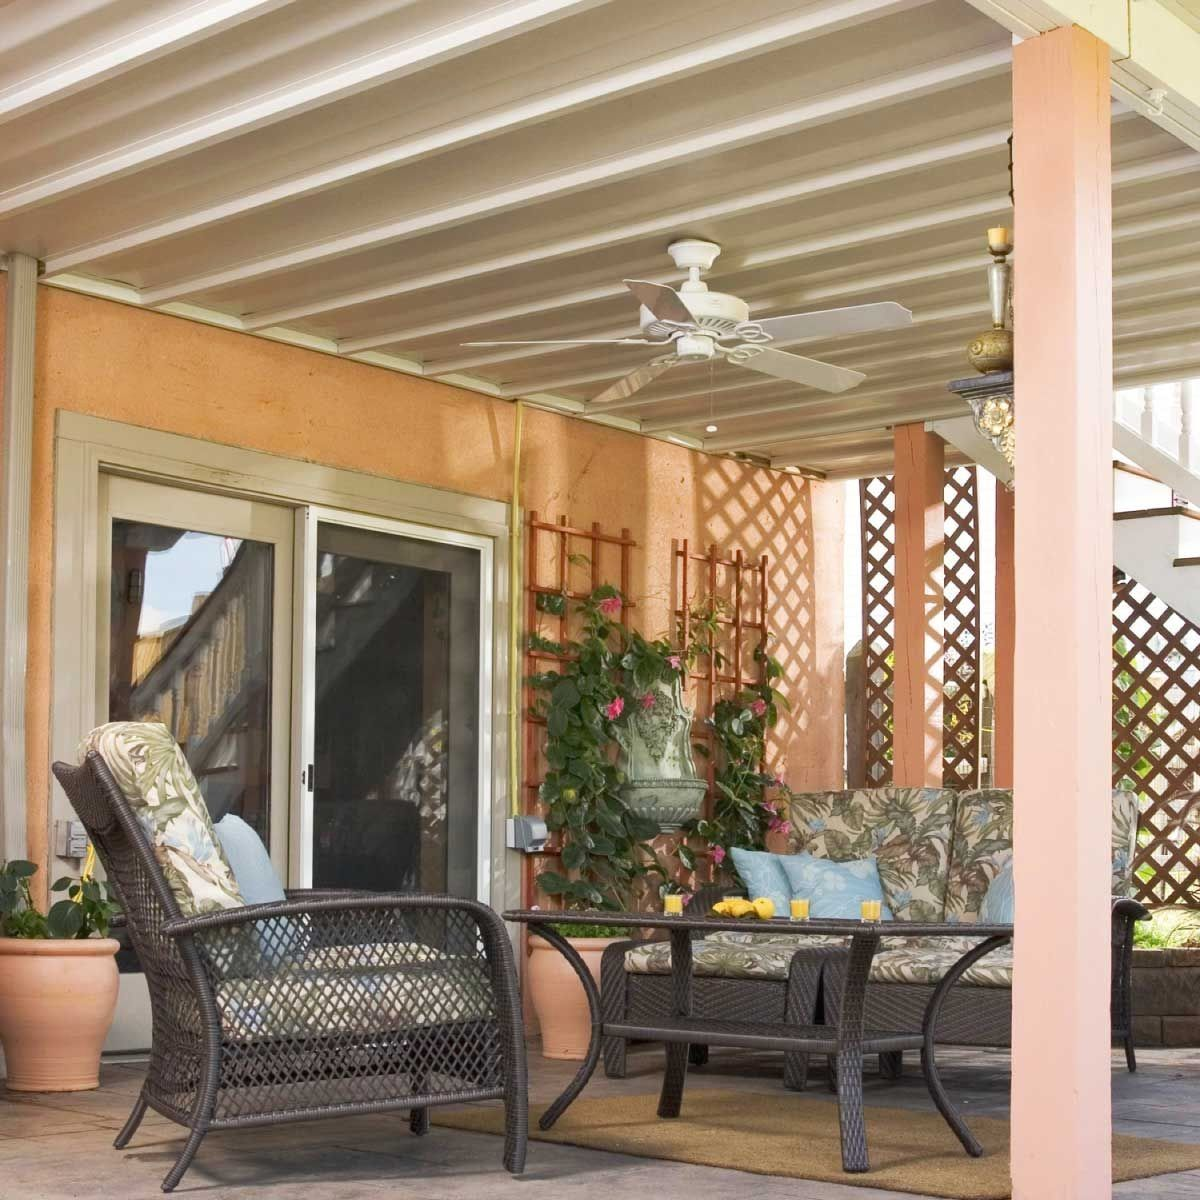 How To Build An Under Deck Roof 1000 In 2020 Patio Under Decks Under Deck Roofing Under Decks